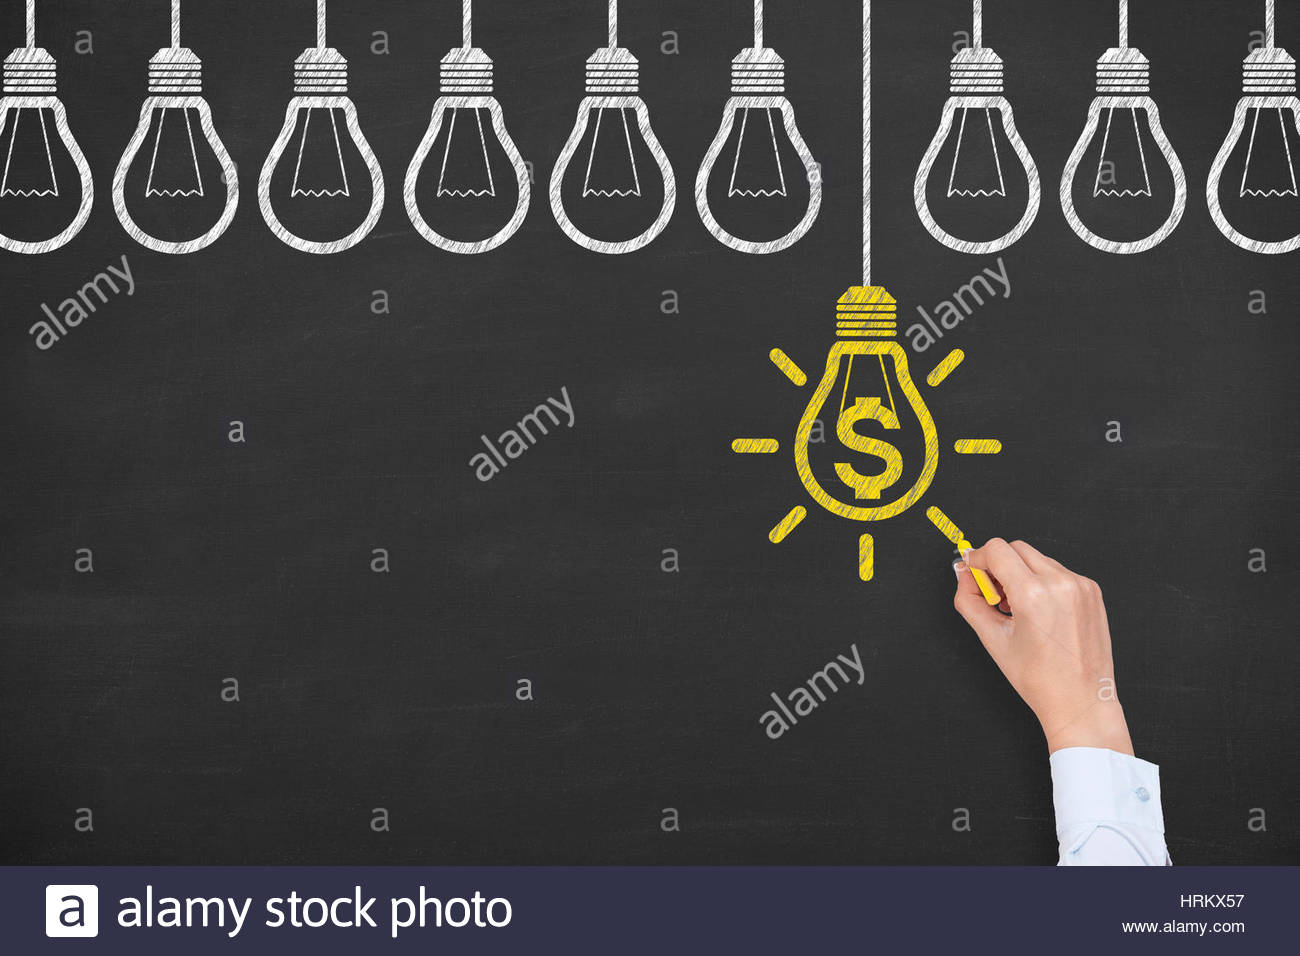 Finance Idea Concepts Drawing on Blackboard Background - Stock Image